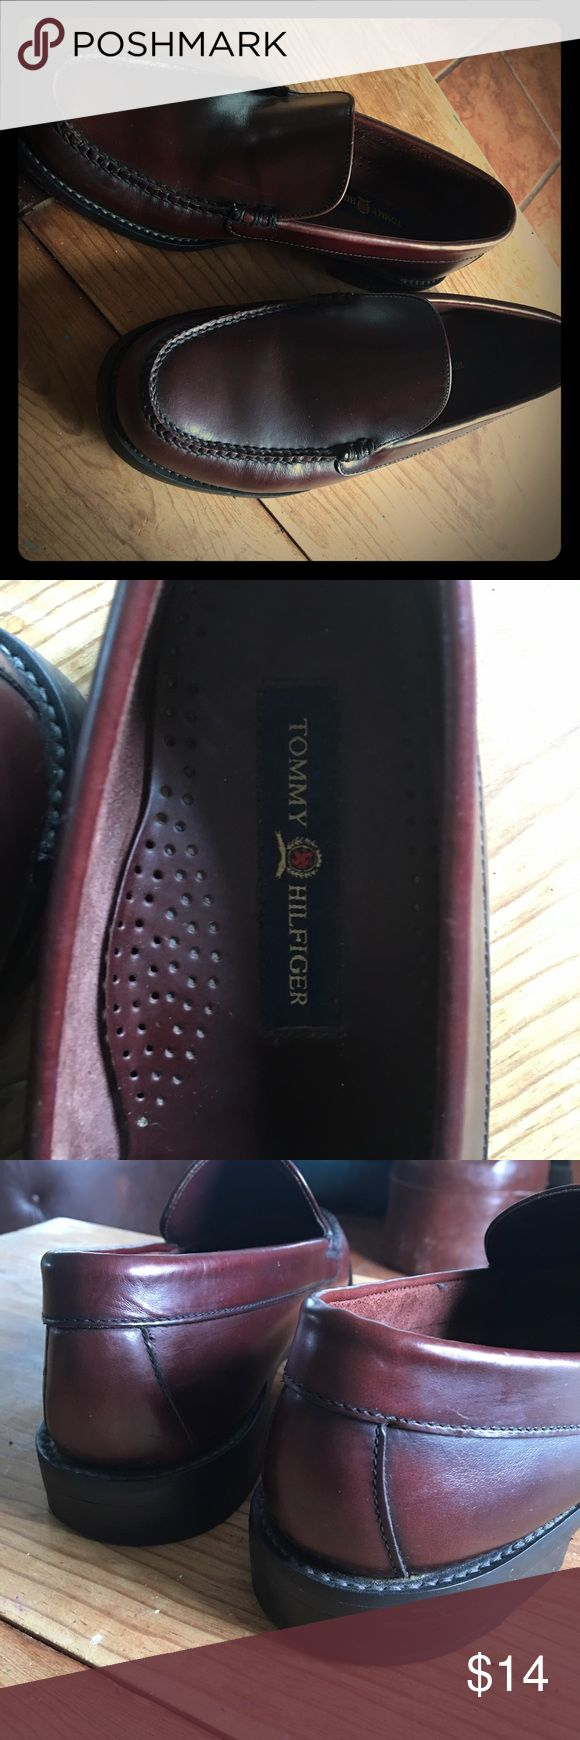 Tommy Hilfiger Loafers Men's slip on Tommy Hilfiger's. Very comfy and versatile.  Look great with khaki's, black, navy or even denim ! Tommy Hilfiger Shoes Loafers & Slip-Ons